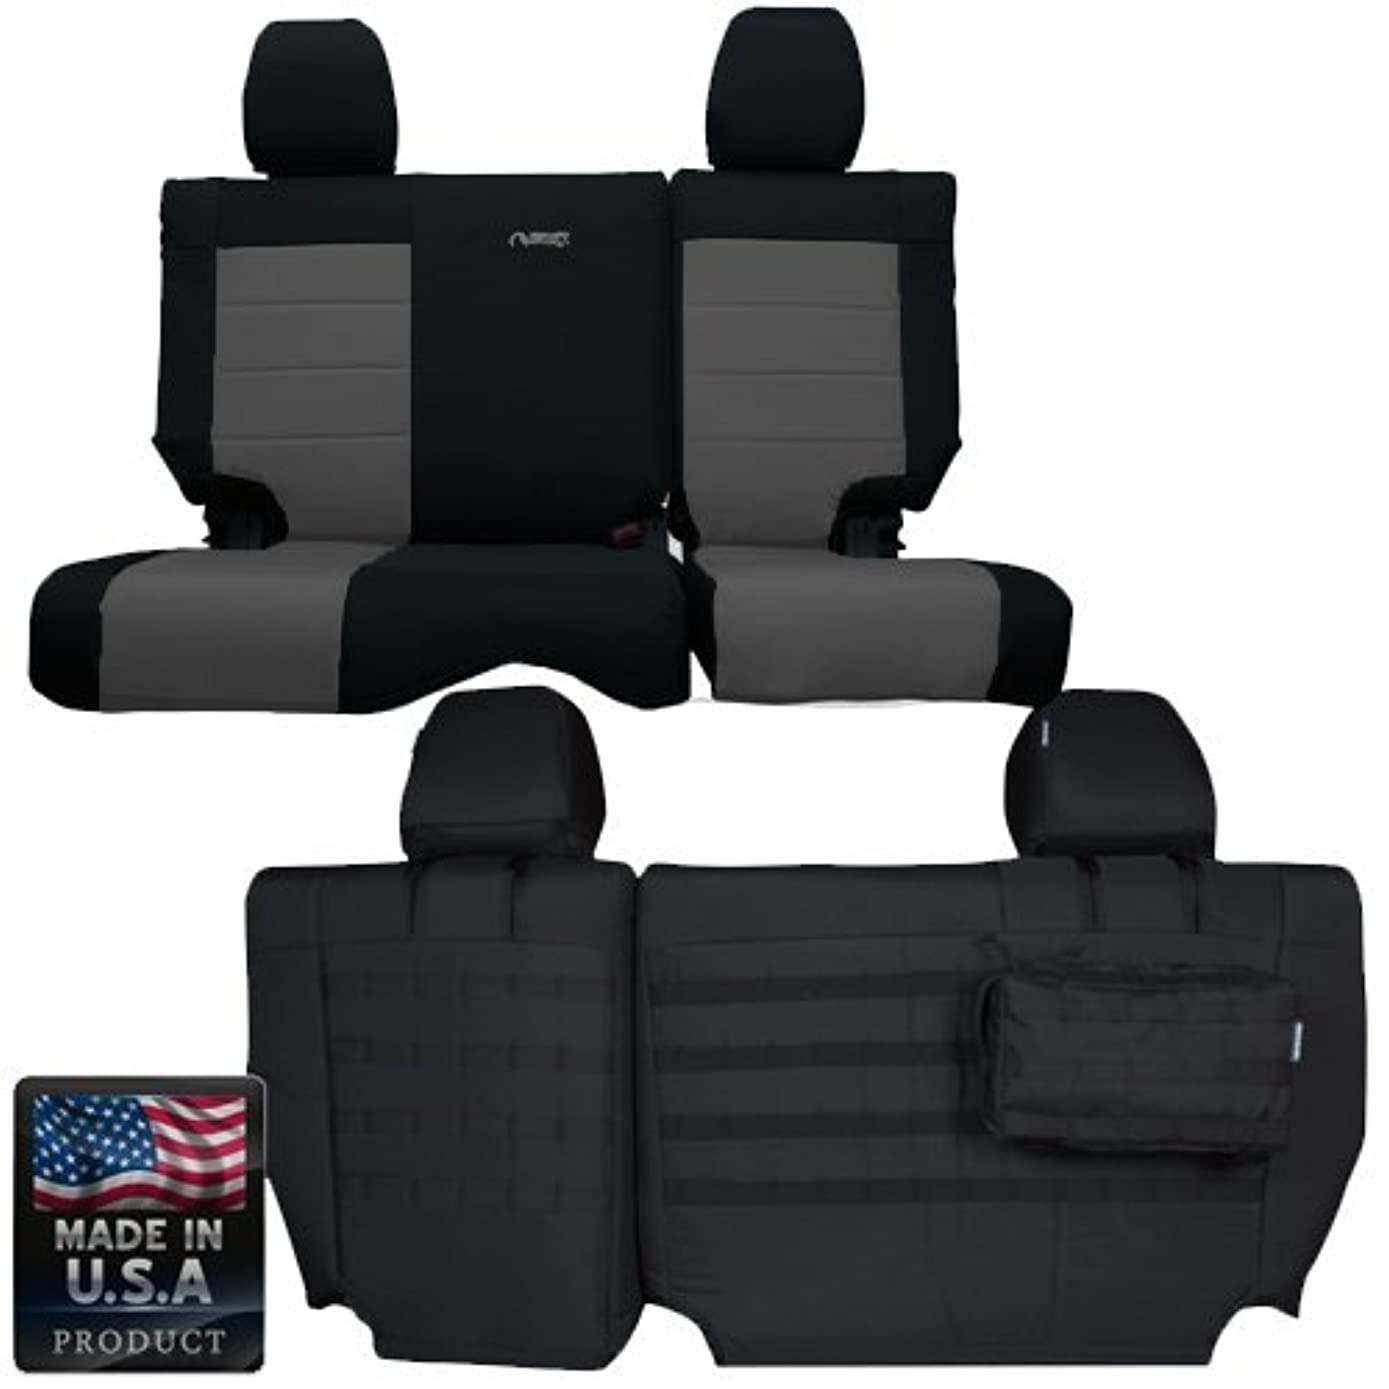 Bartact BTJKSC0810R4BG - 2008-2010 Jeep Wrangler JK 4-Door - Black/Graphite Mil-Spec with MOLLE System Rear Bench Seat Covers